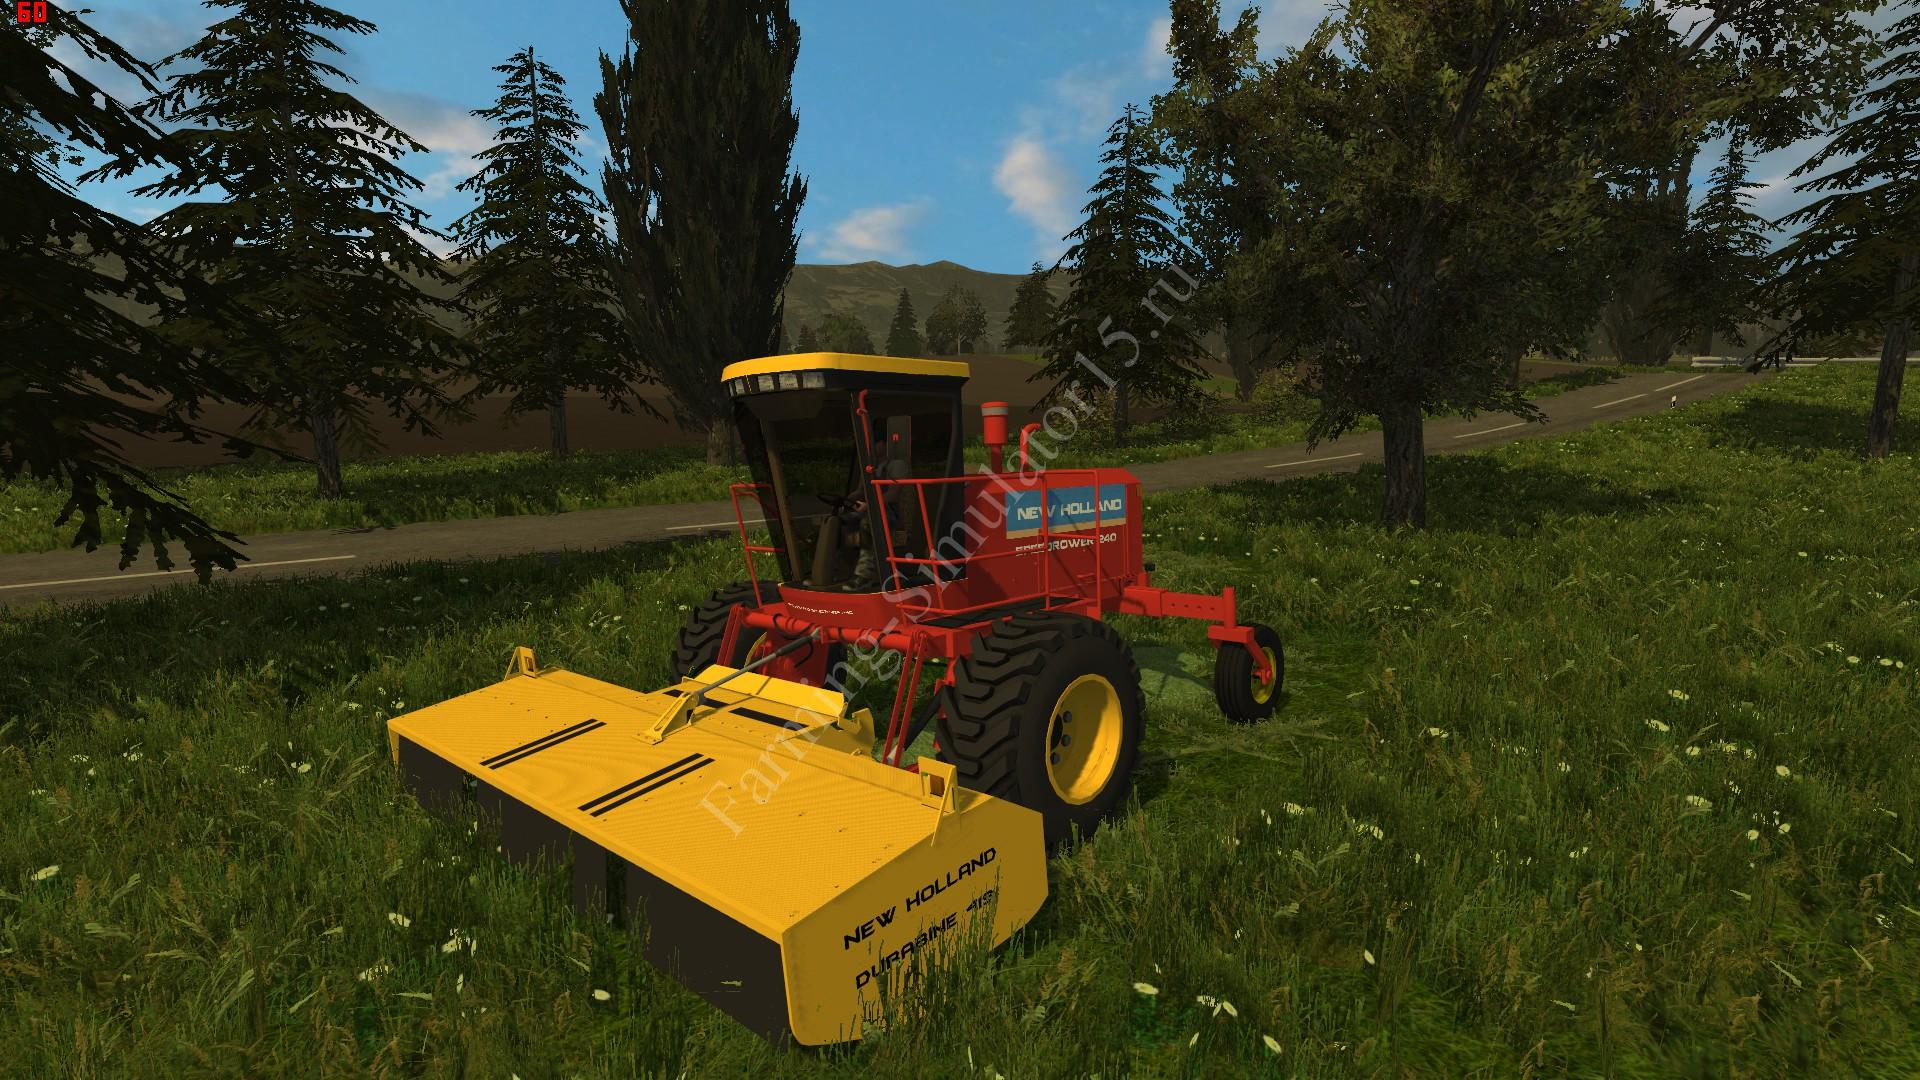 Видео мод газонокосилки New Holland 240 Speedrower Farming Simulator 2013, Farming Simulator 13